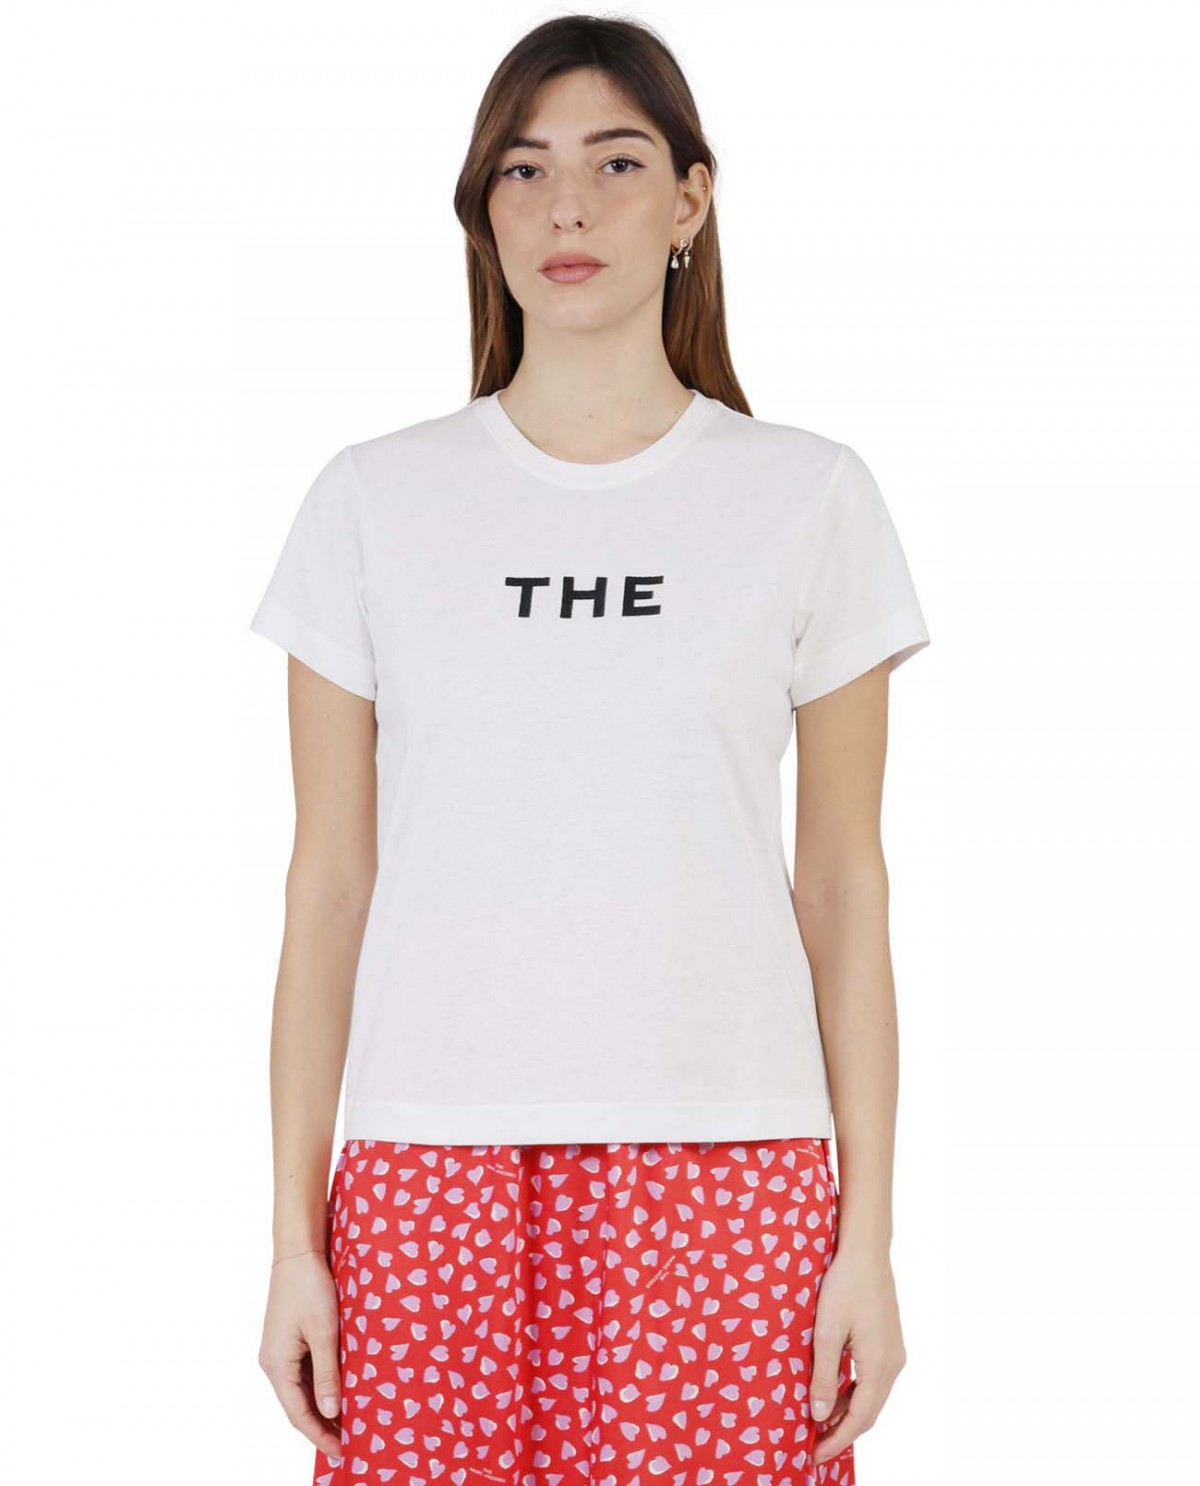 The Marc Jacobs white T-shirt